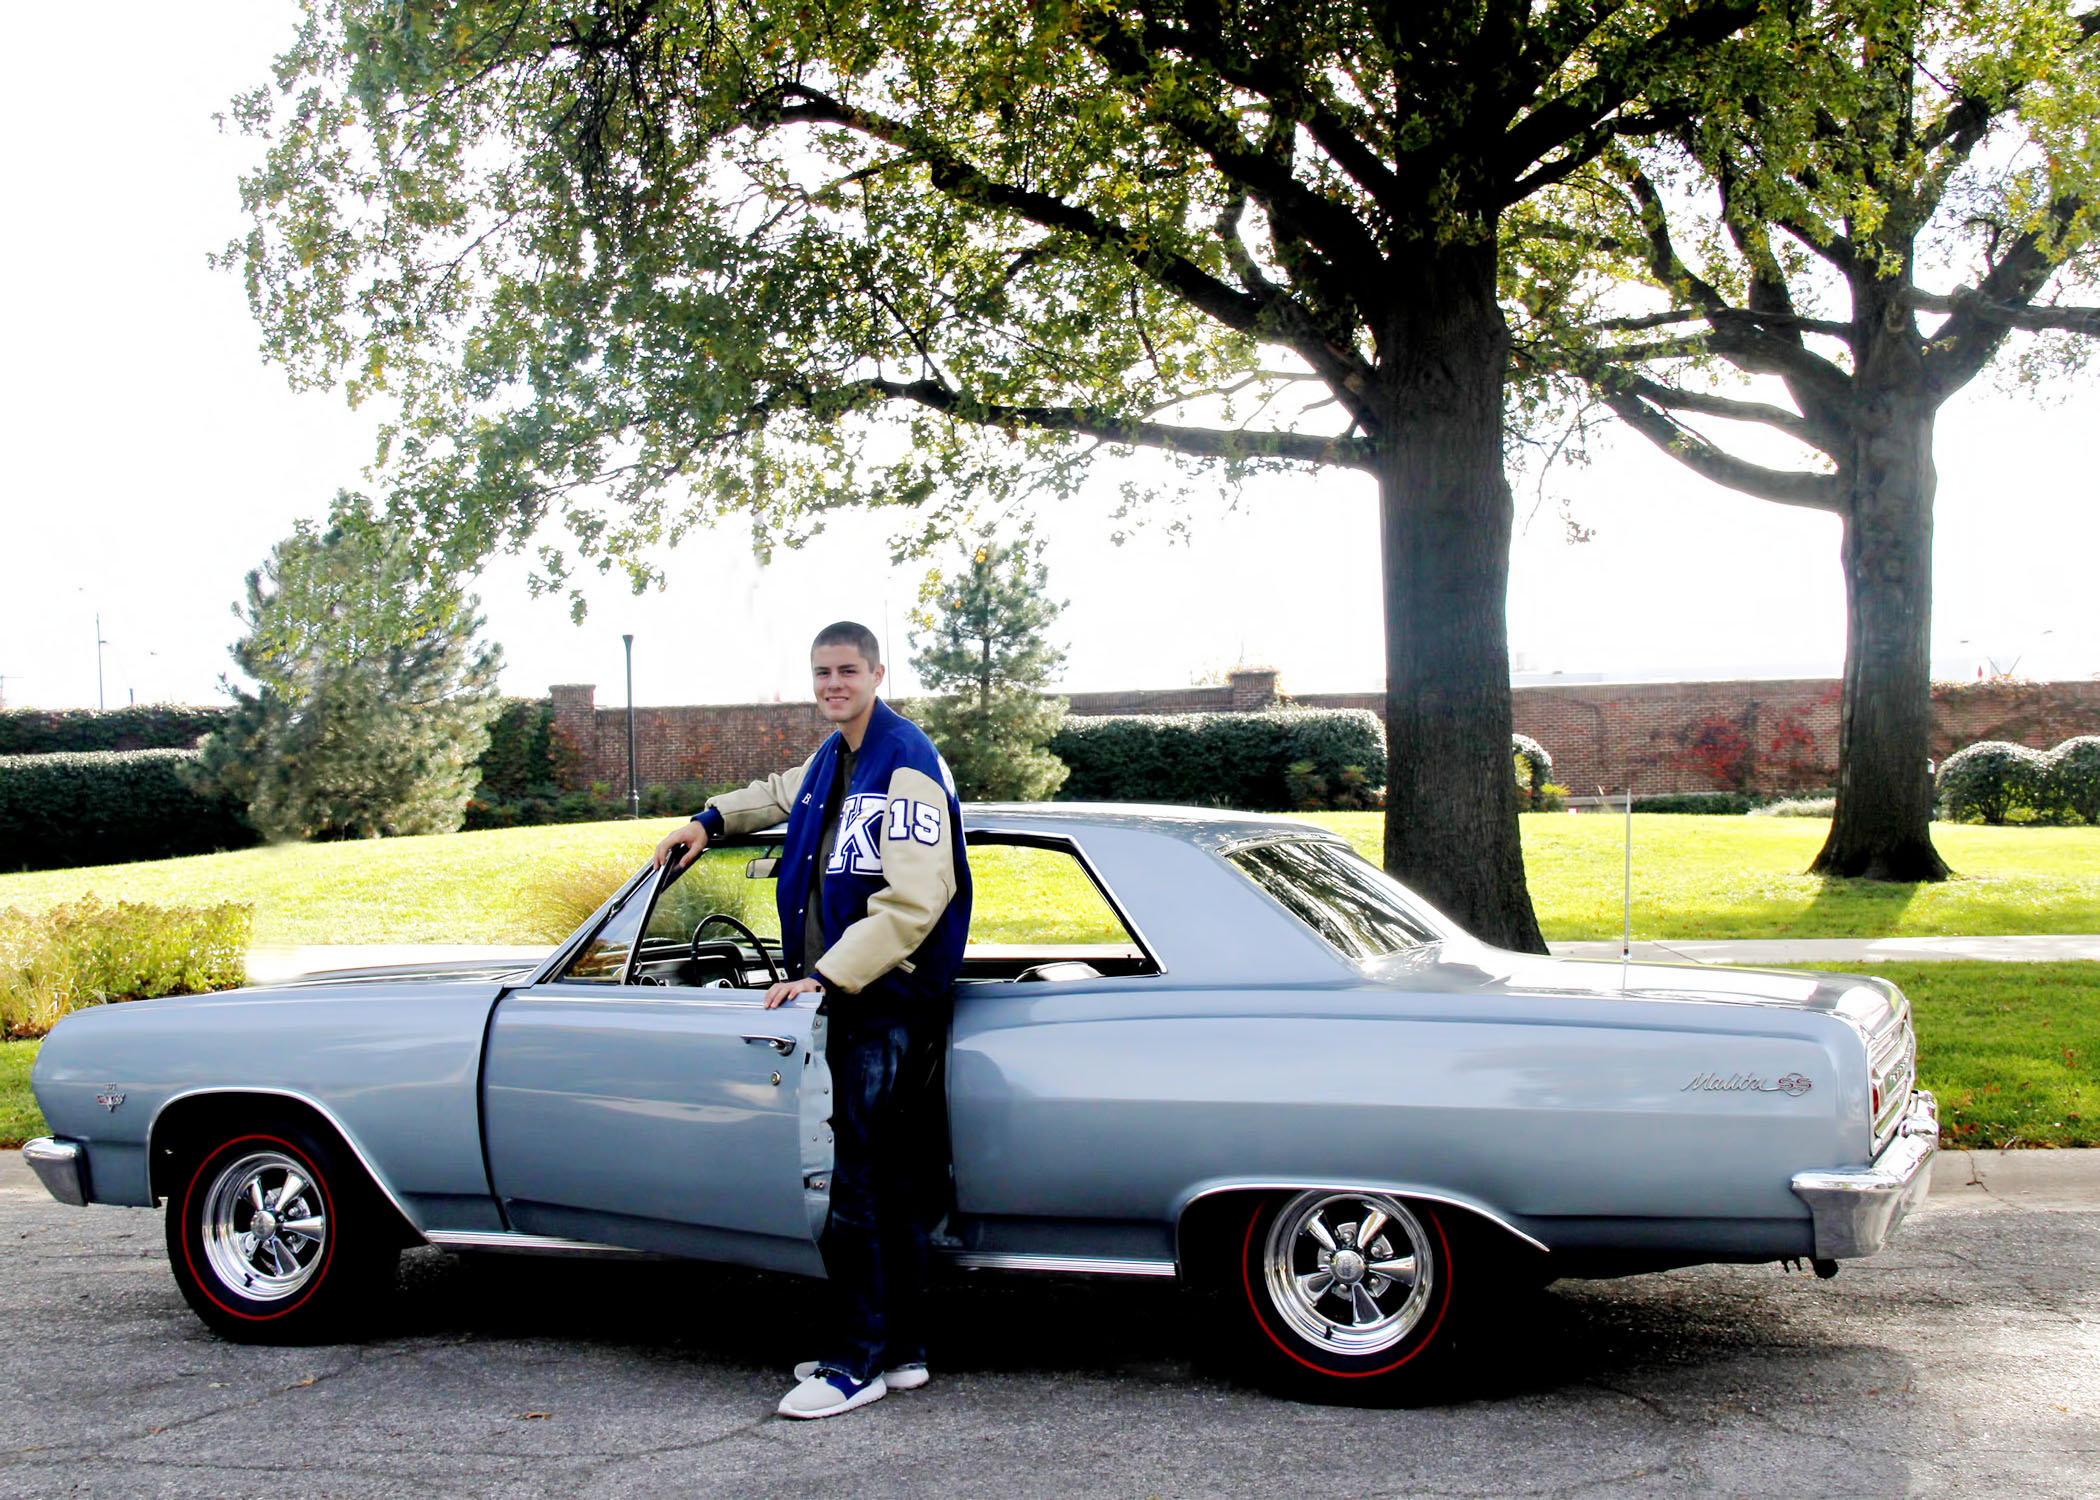 BRUCE_15_FULL_LENGTH_FIGURE_WITH_FULL_VIEW_OF_CHEVY